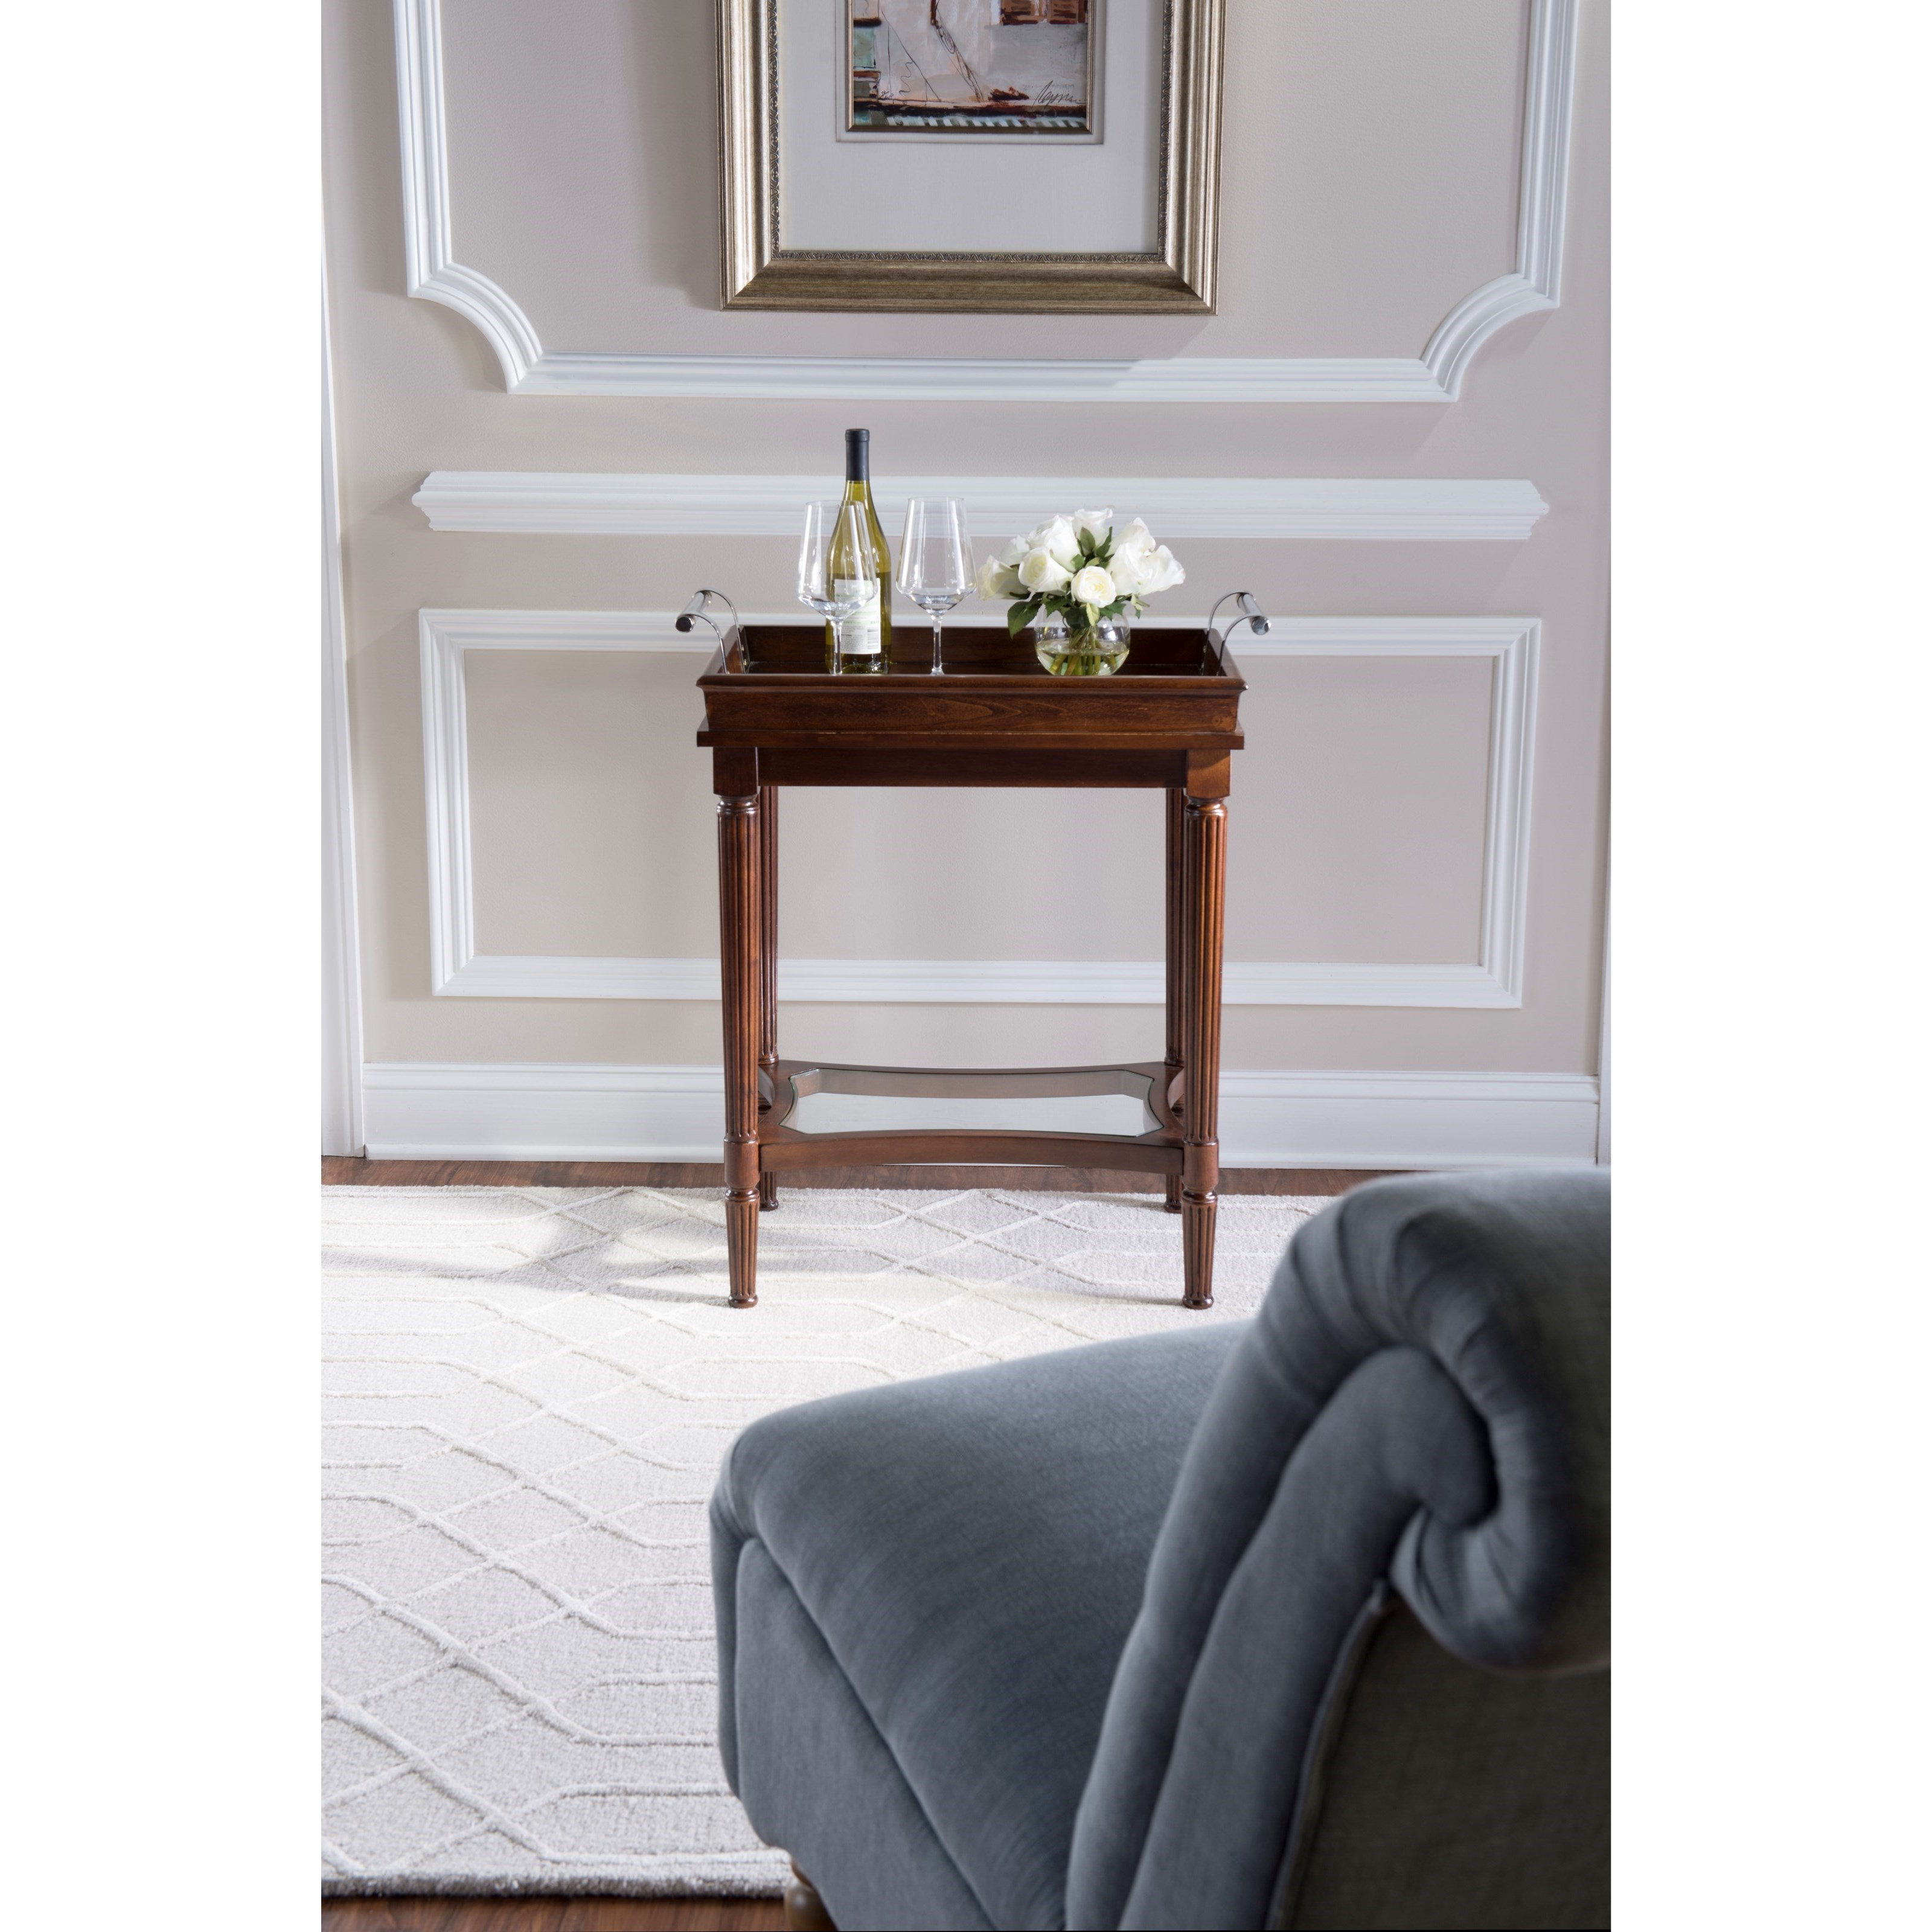 Accent Furniture Masterpiece Mia Serving Tray Table by Powell at Goffena Furniture & Mattress Center